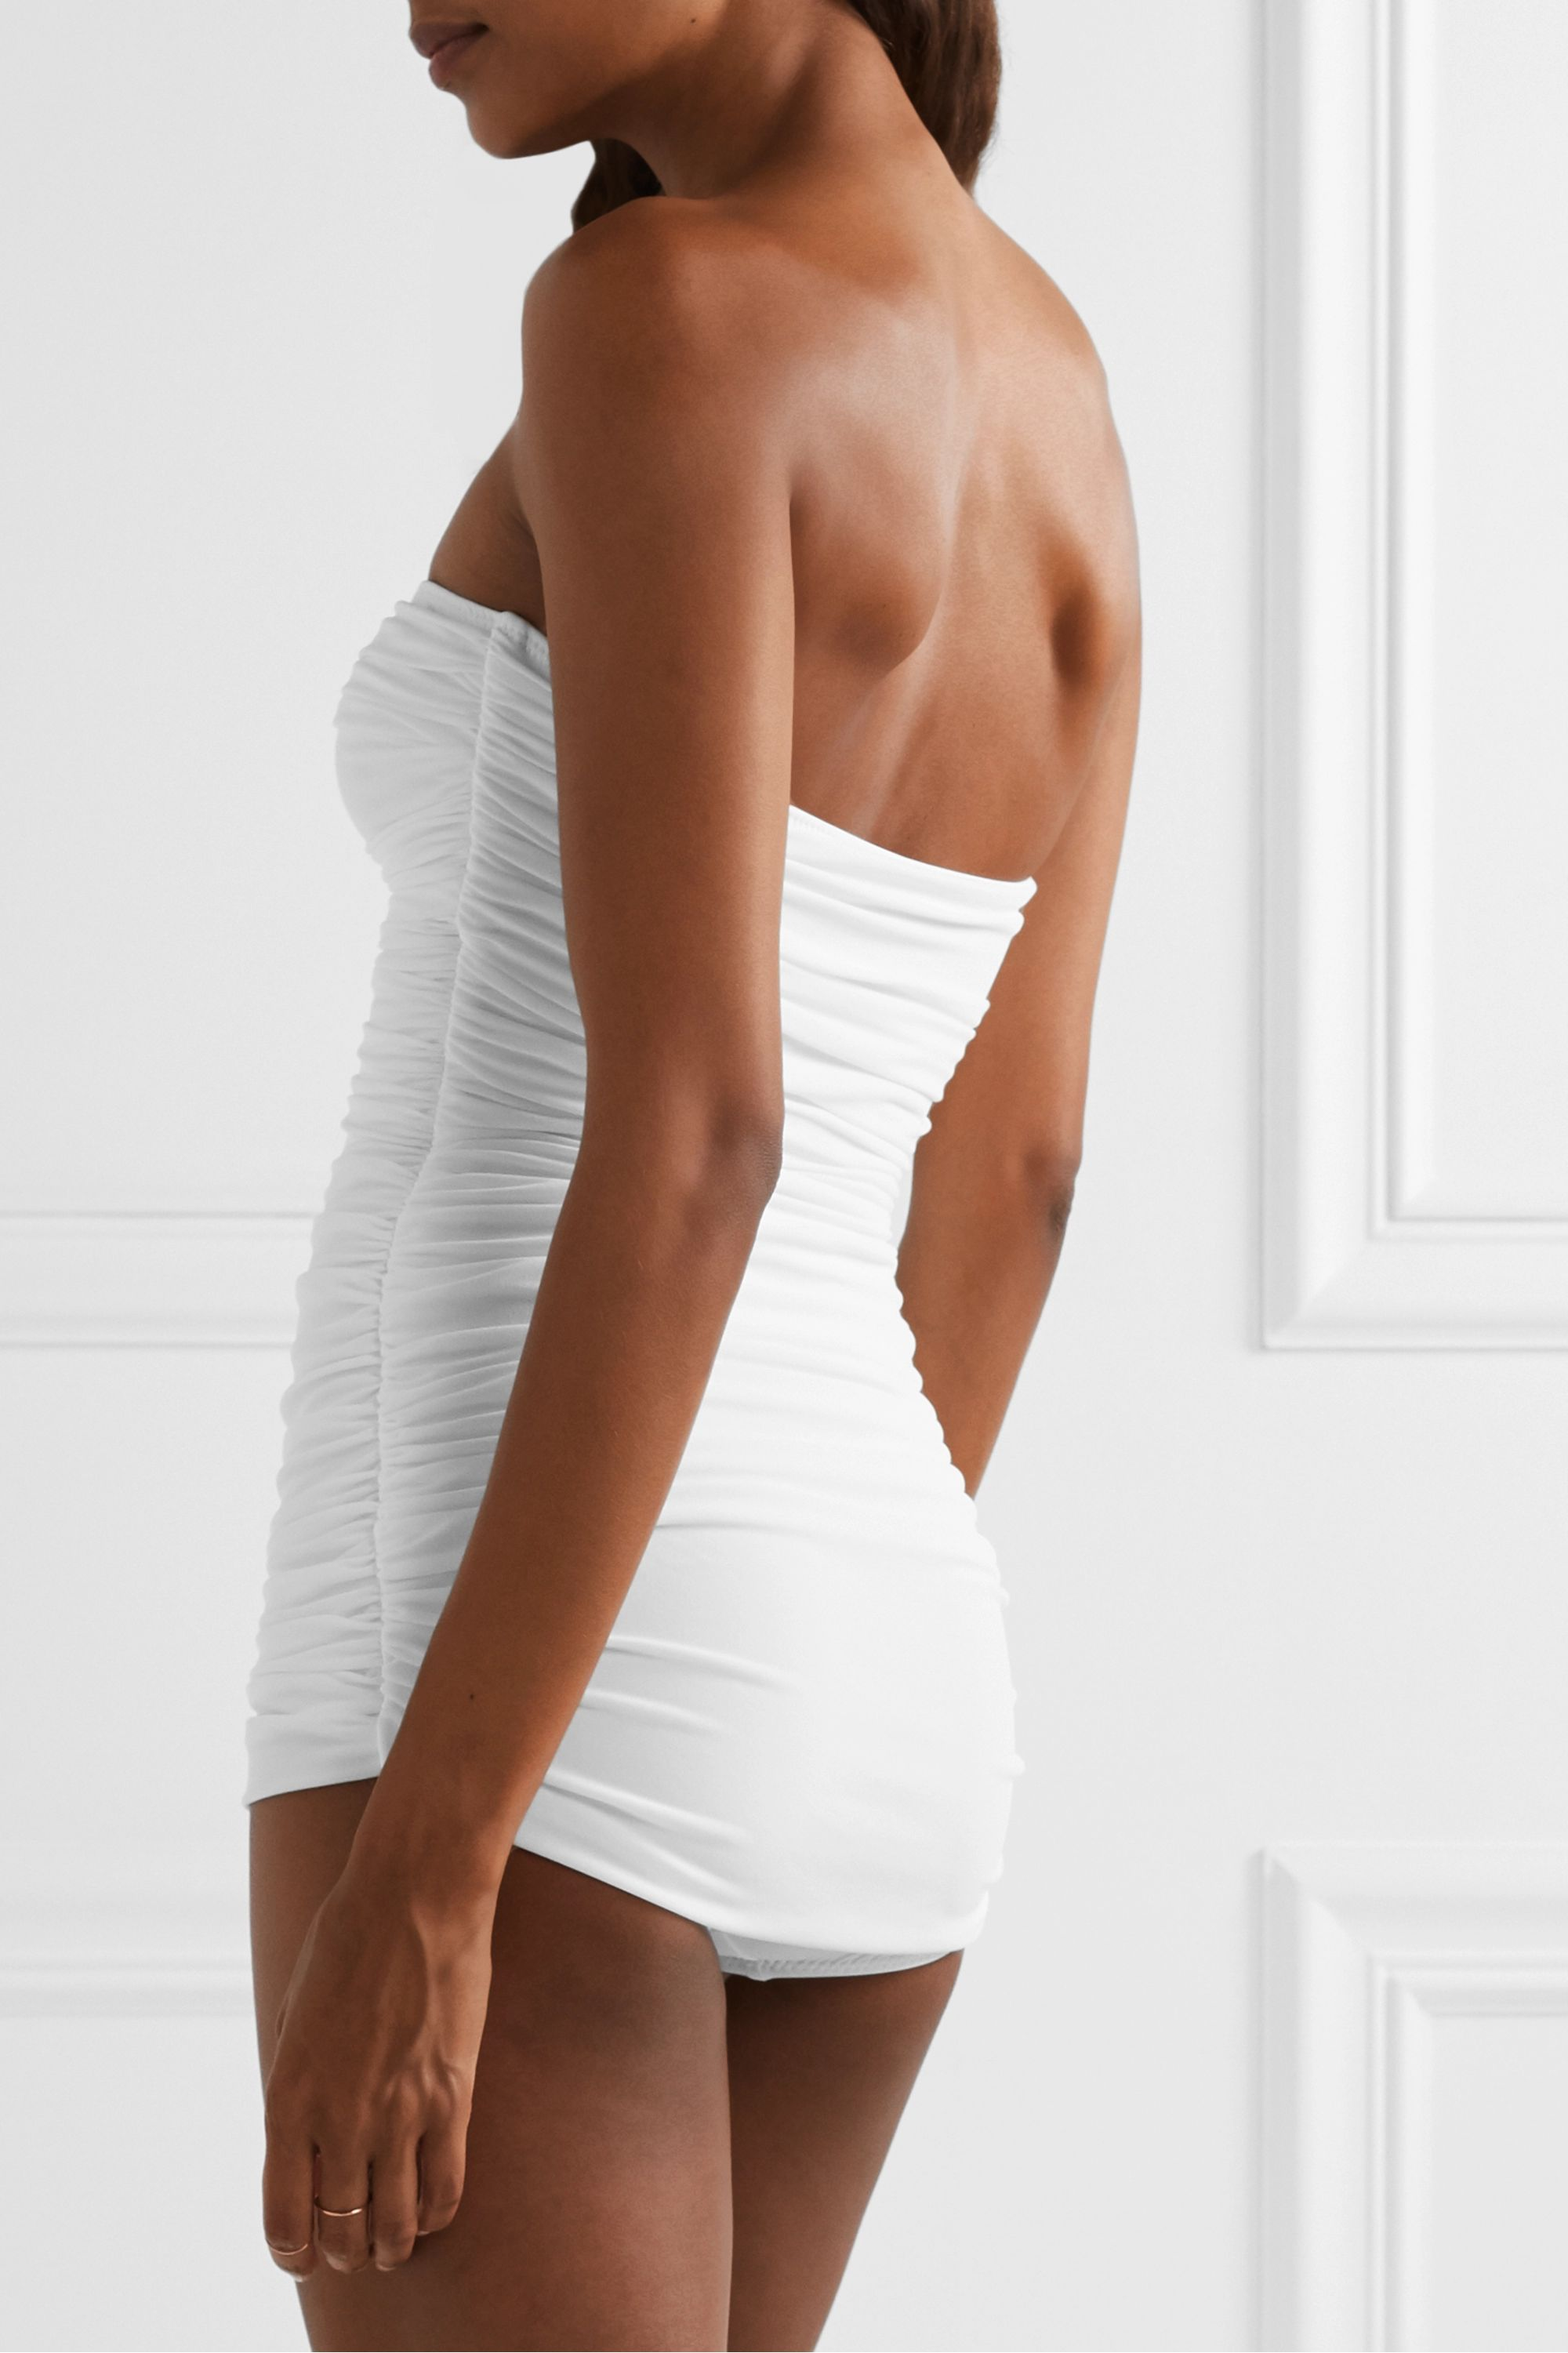 Norma Kamali Walter Mio ruched swimsuit